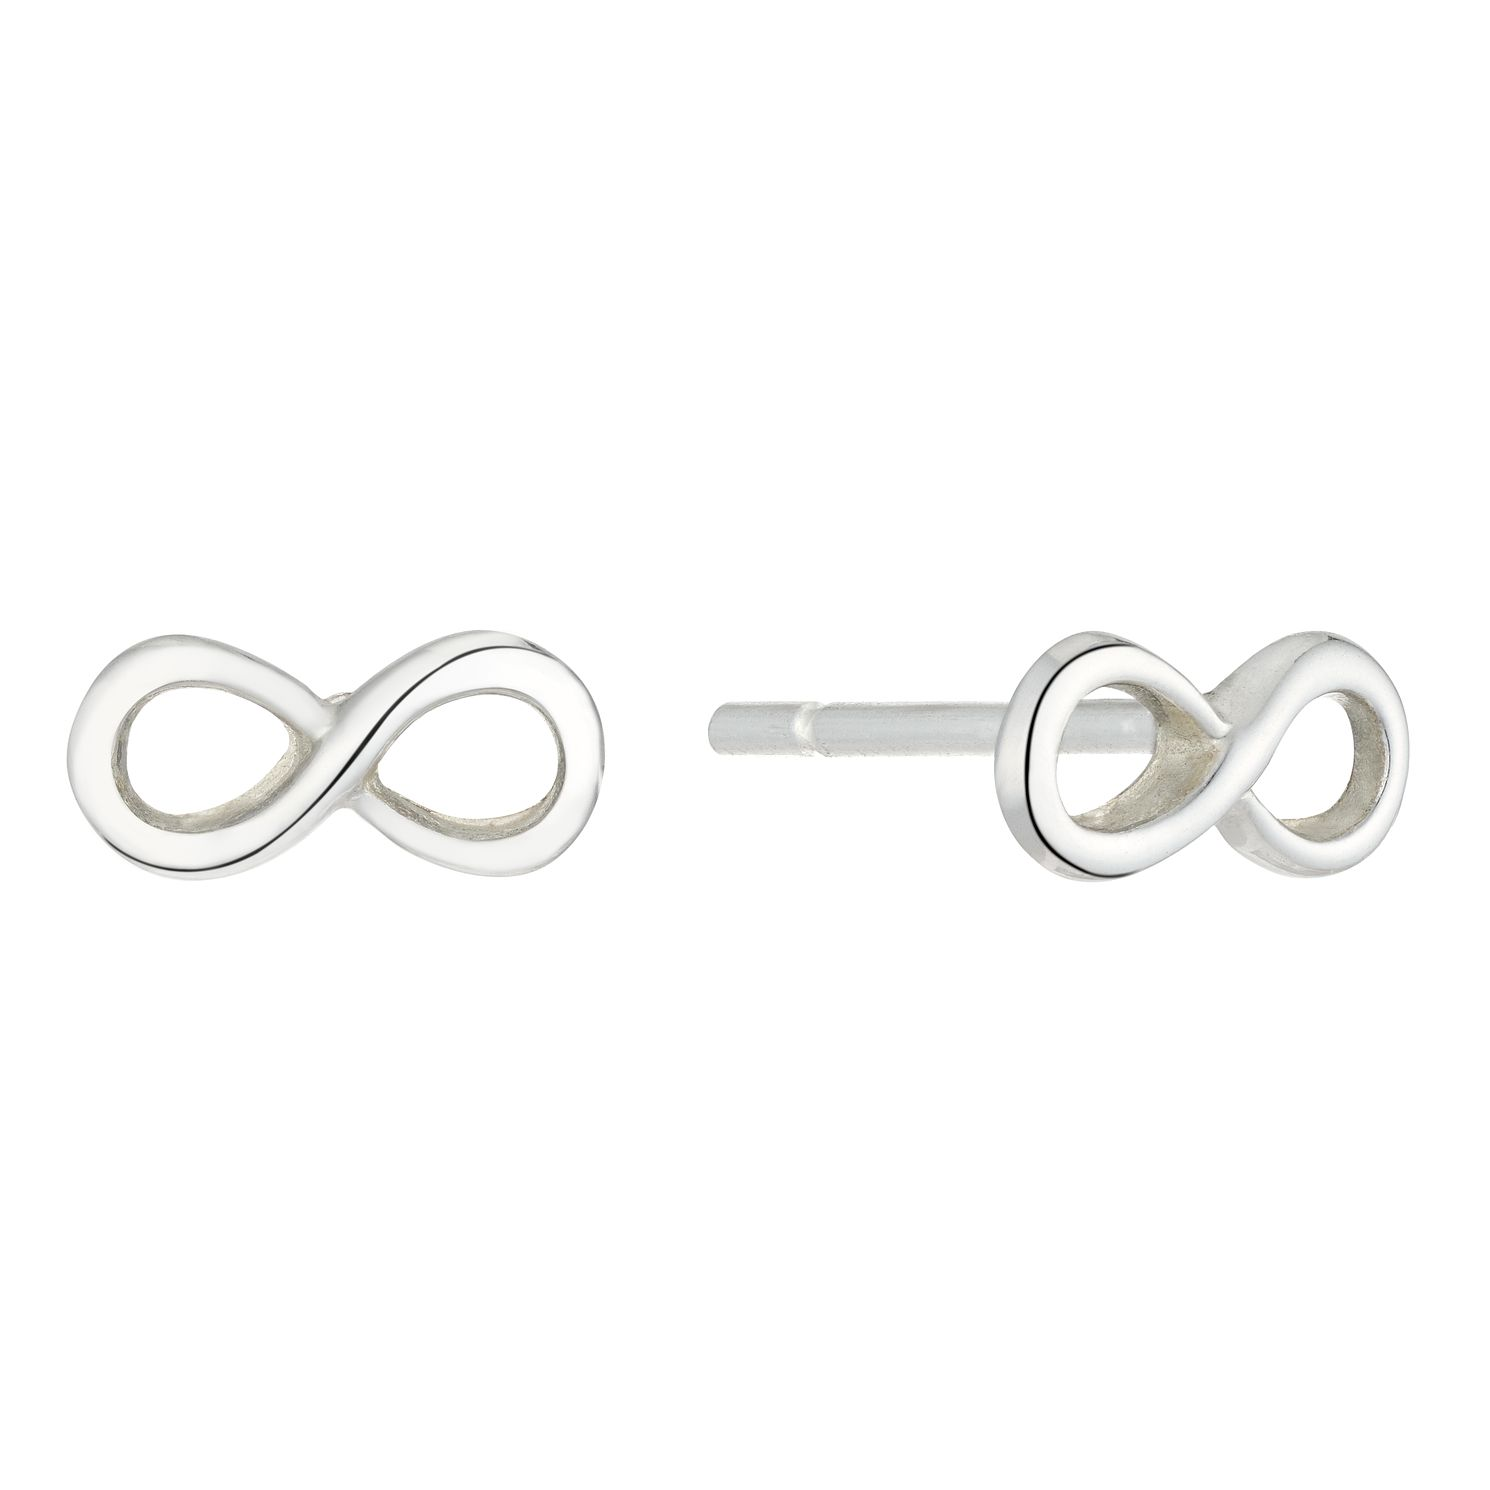 Silver Infinity Symbol Stud Earrings - Product number 5693705